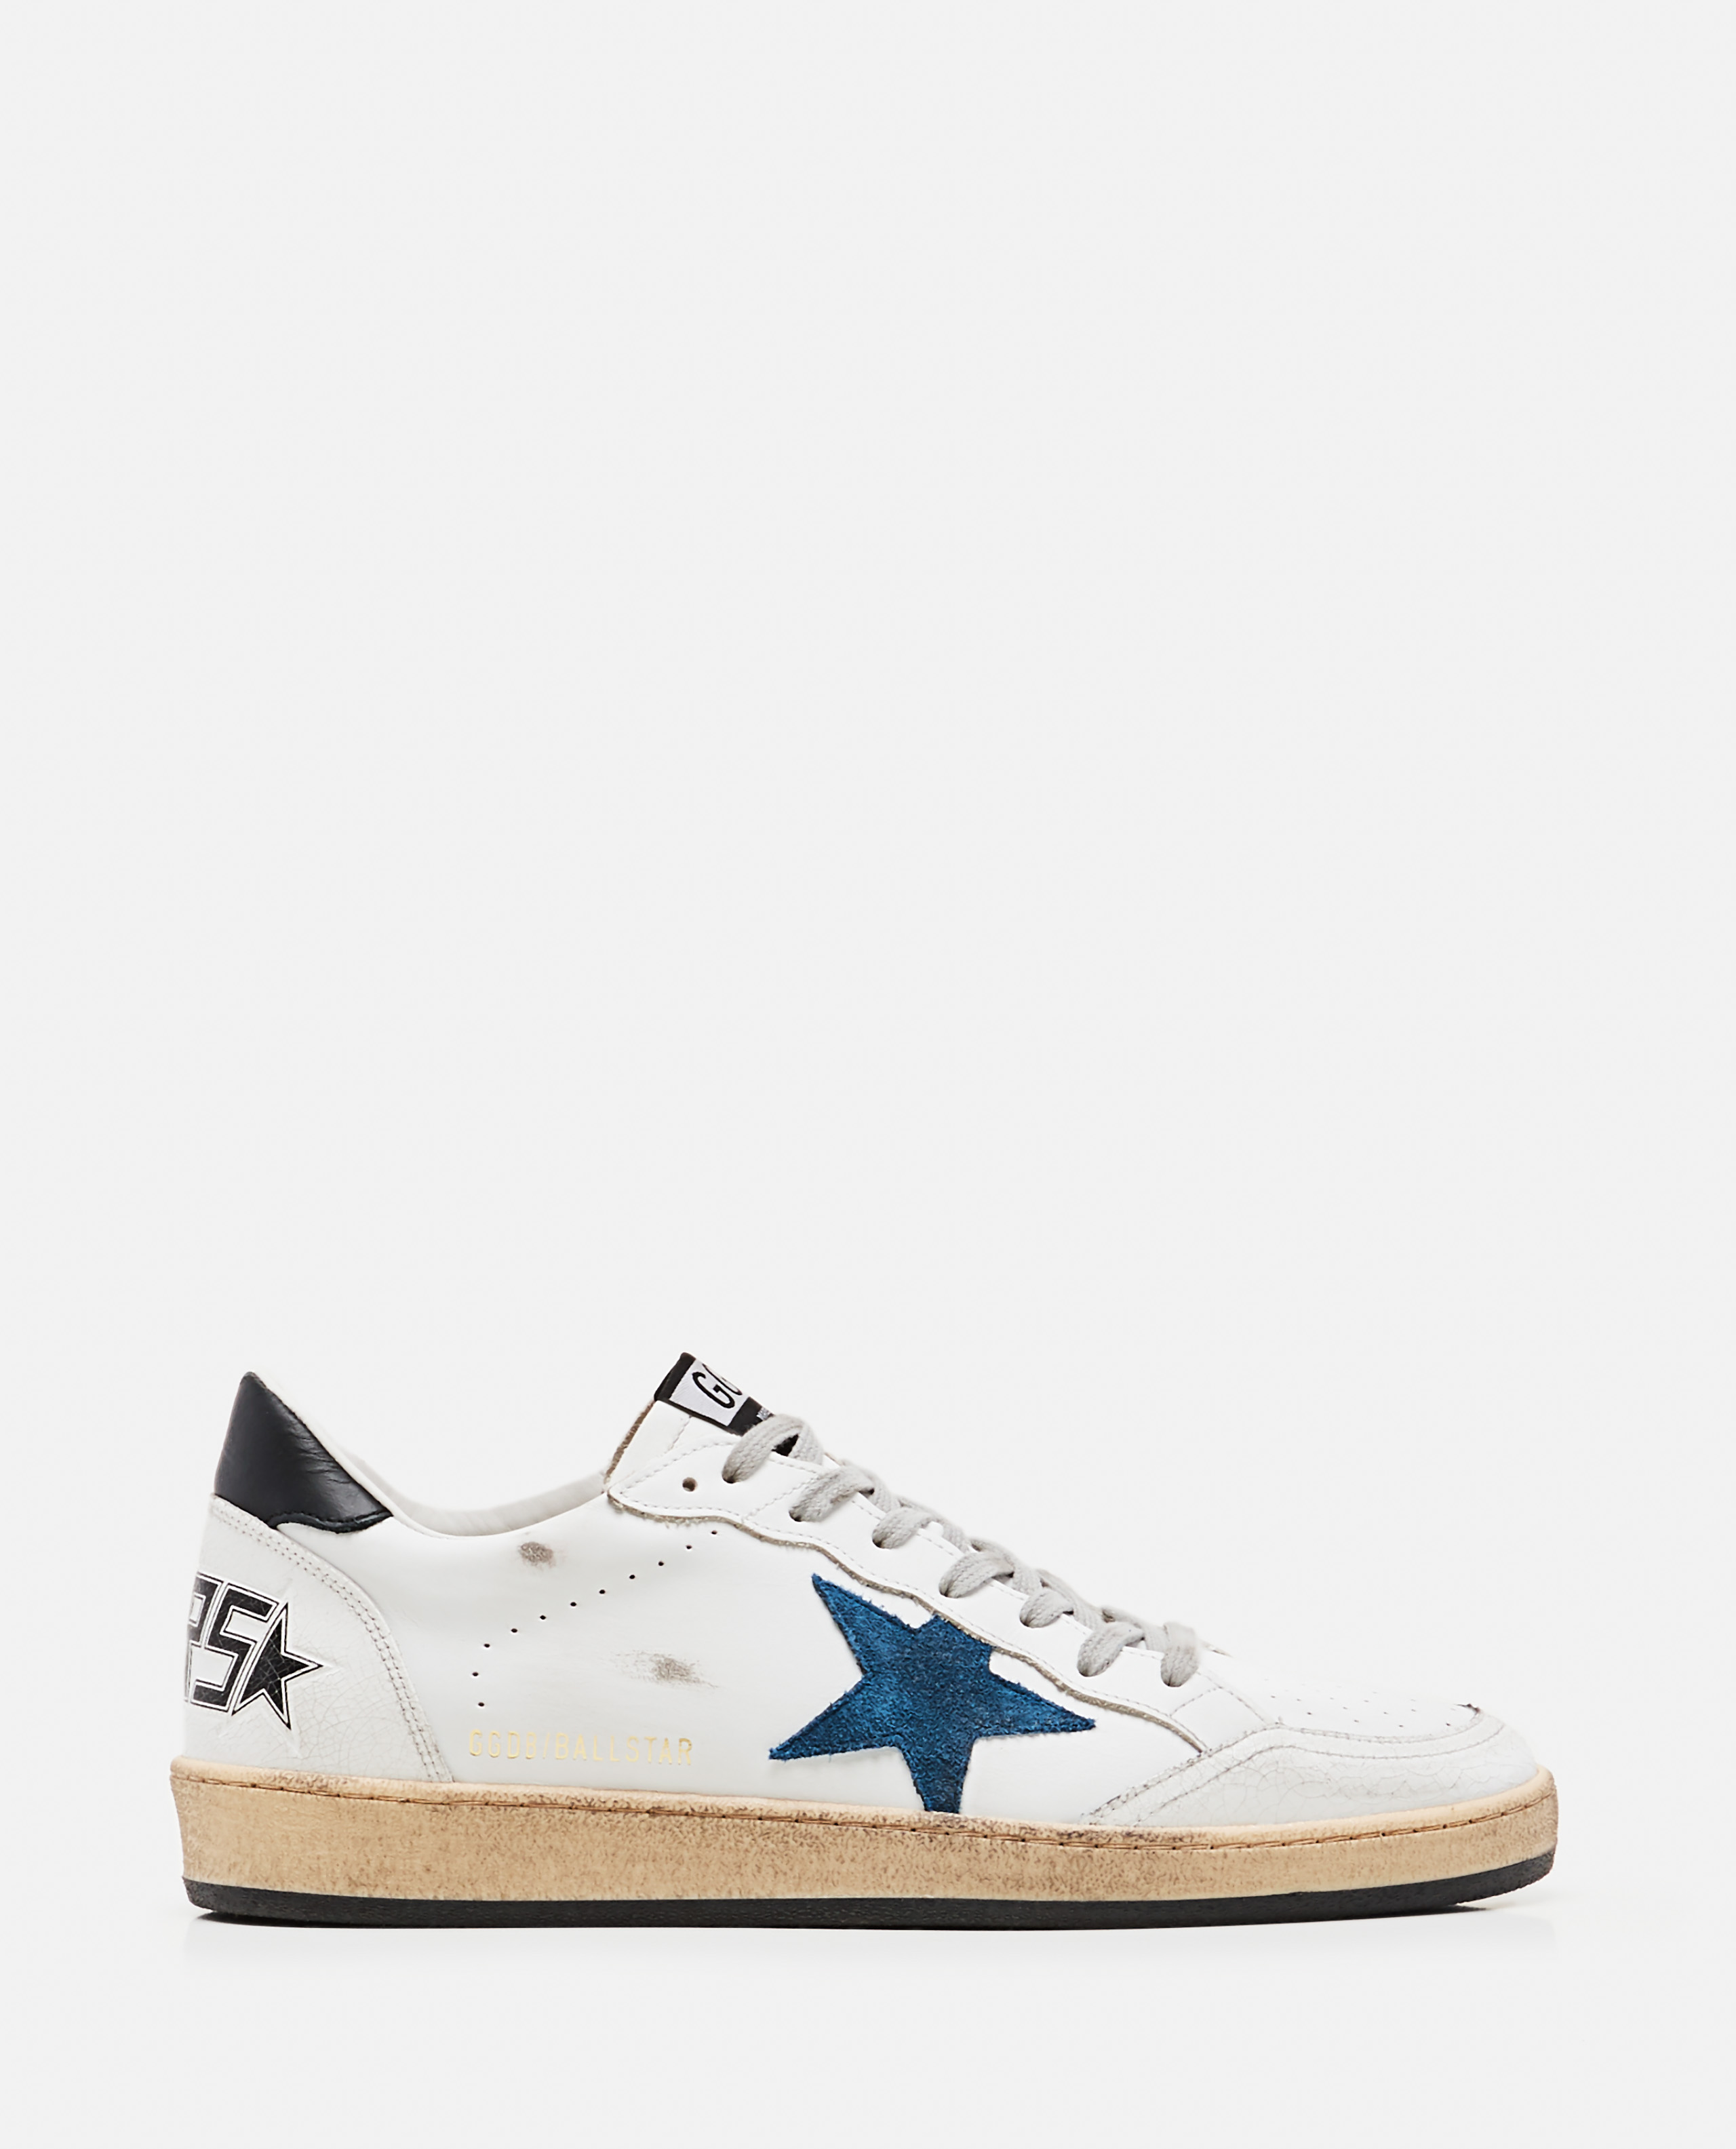 Golden Goose Leathers GOLDEN GOOSE BALLSTAR SNEAKERS IN LEATHER